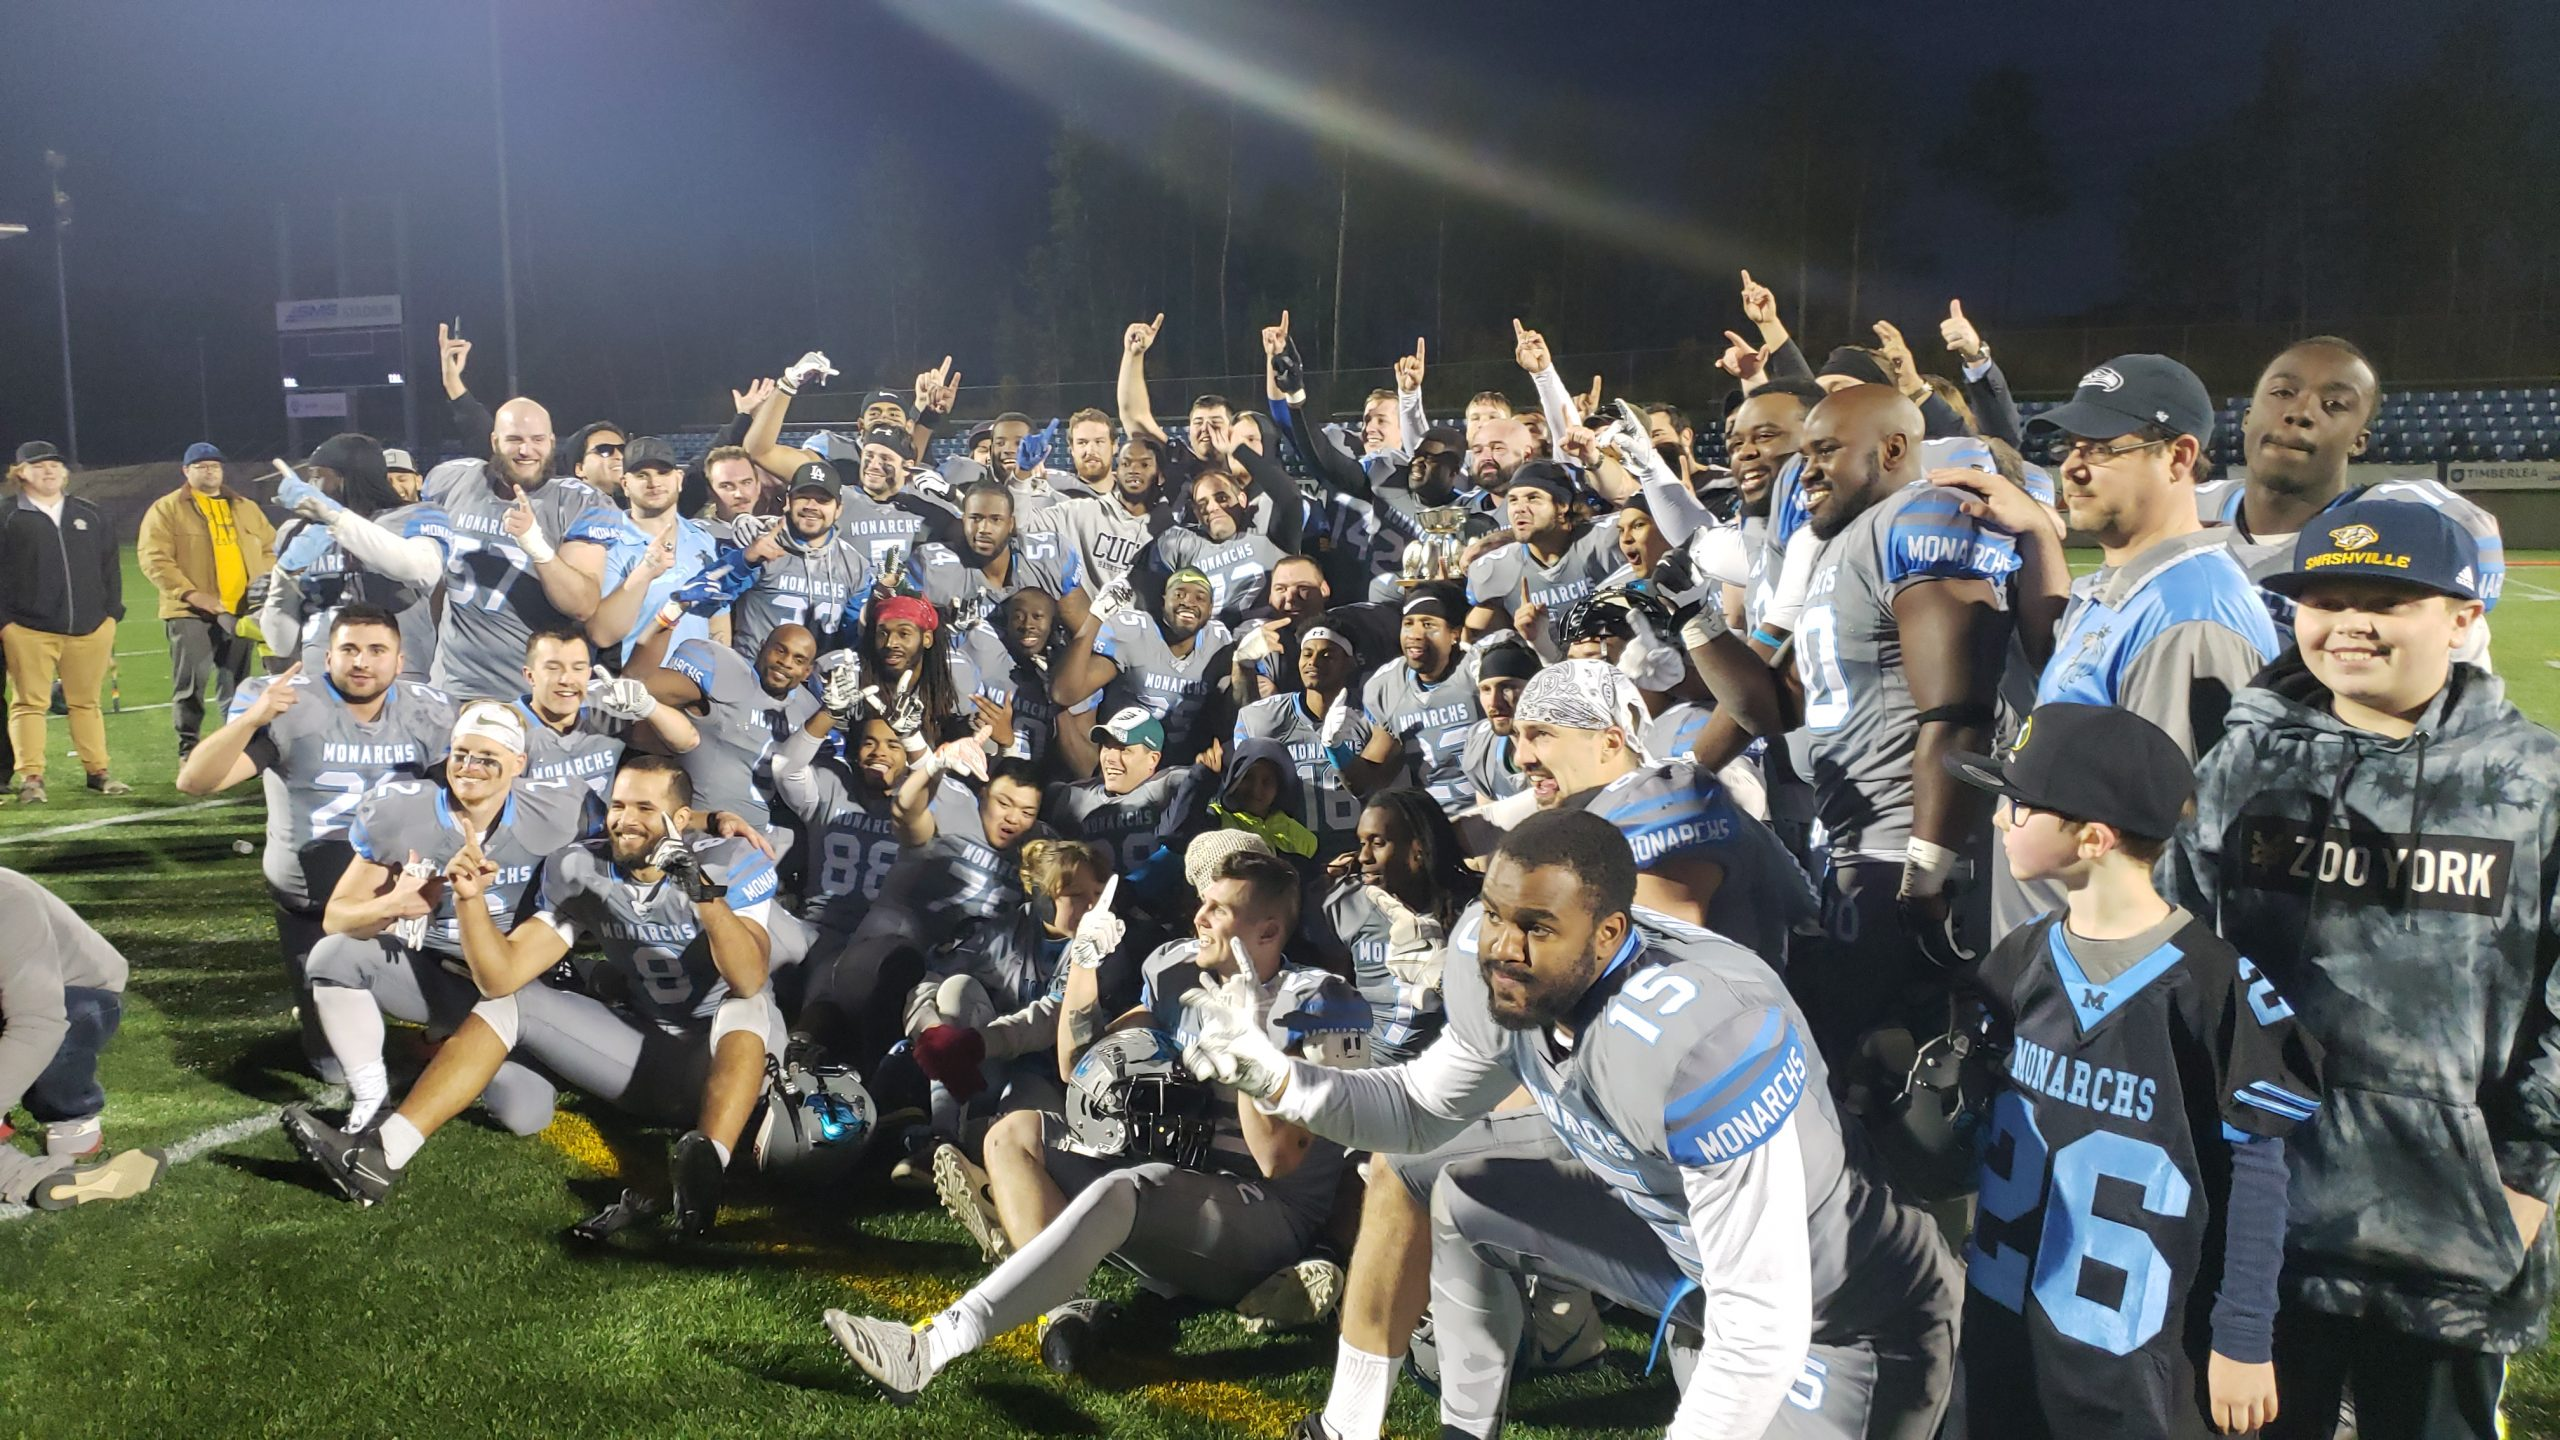 Monarchs Soar In Nailbiter Over GTA All-Stars, Crowned CMFL Champions